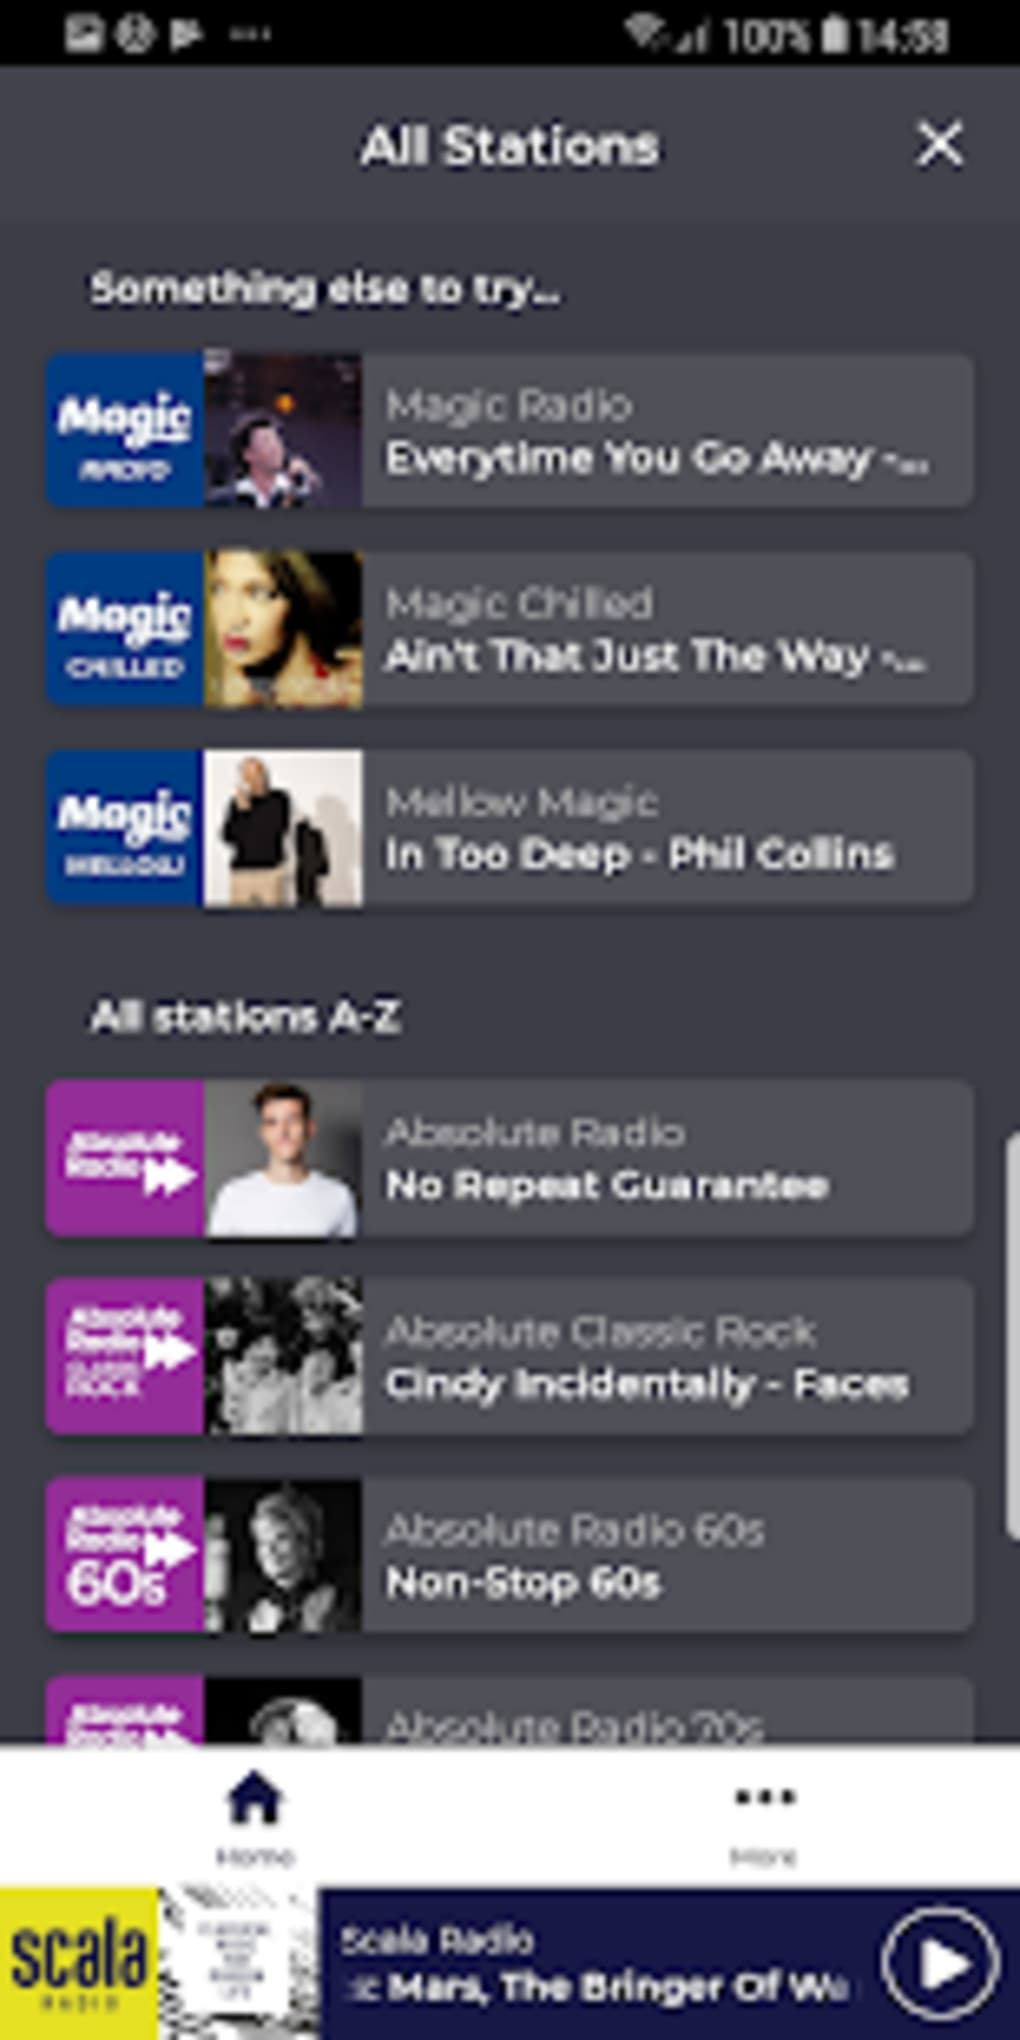 Scala Radio for Android - Download